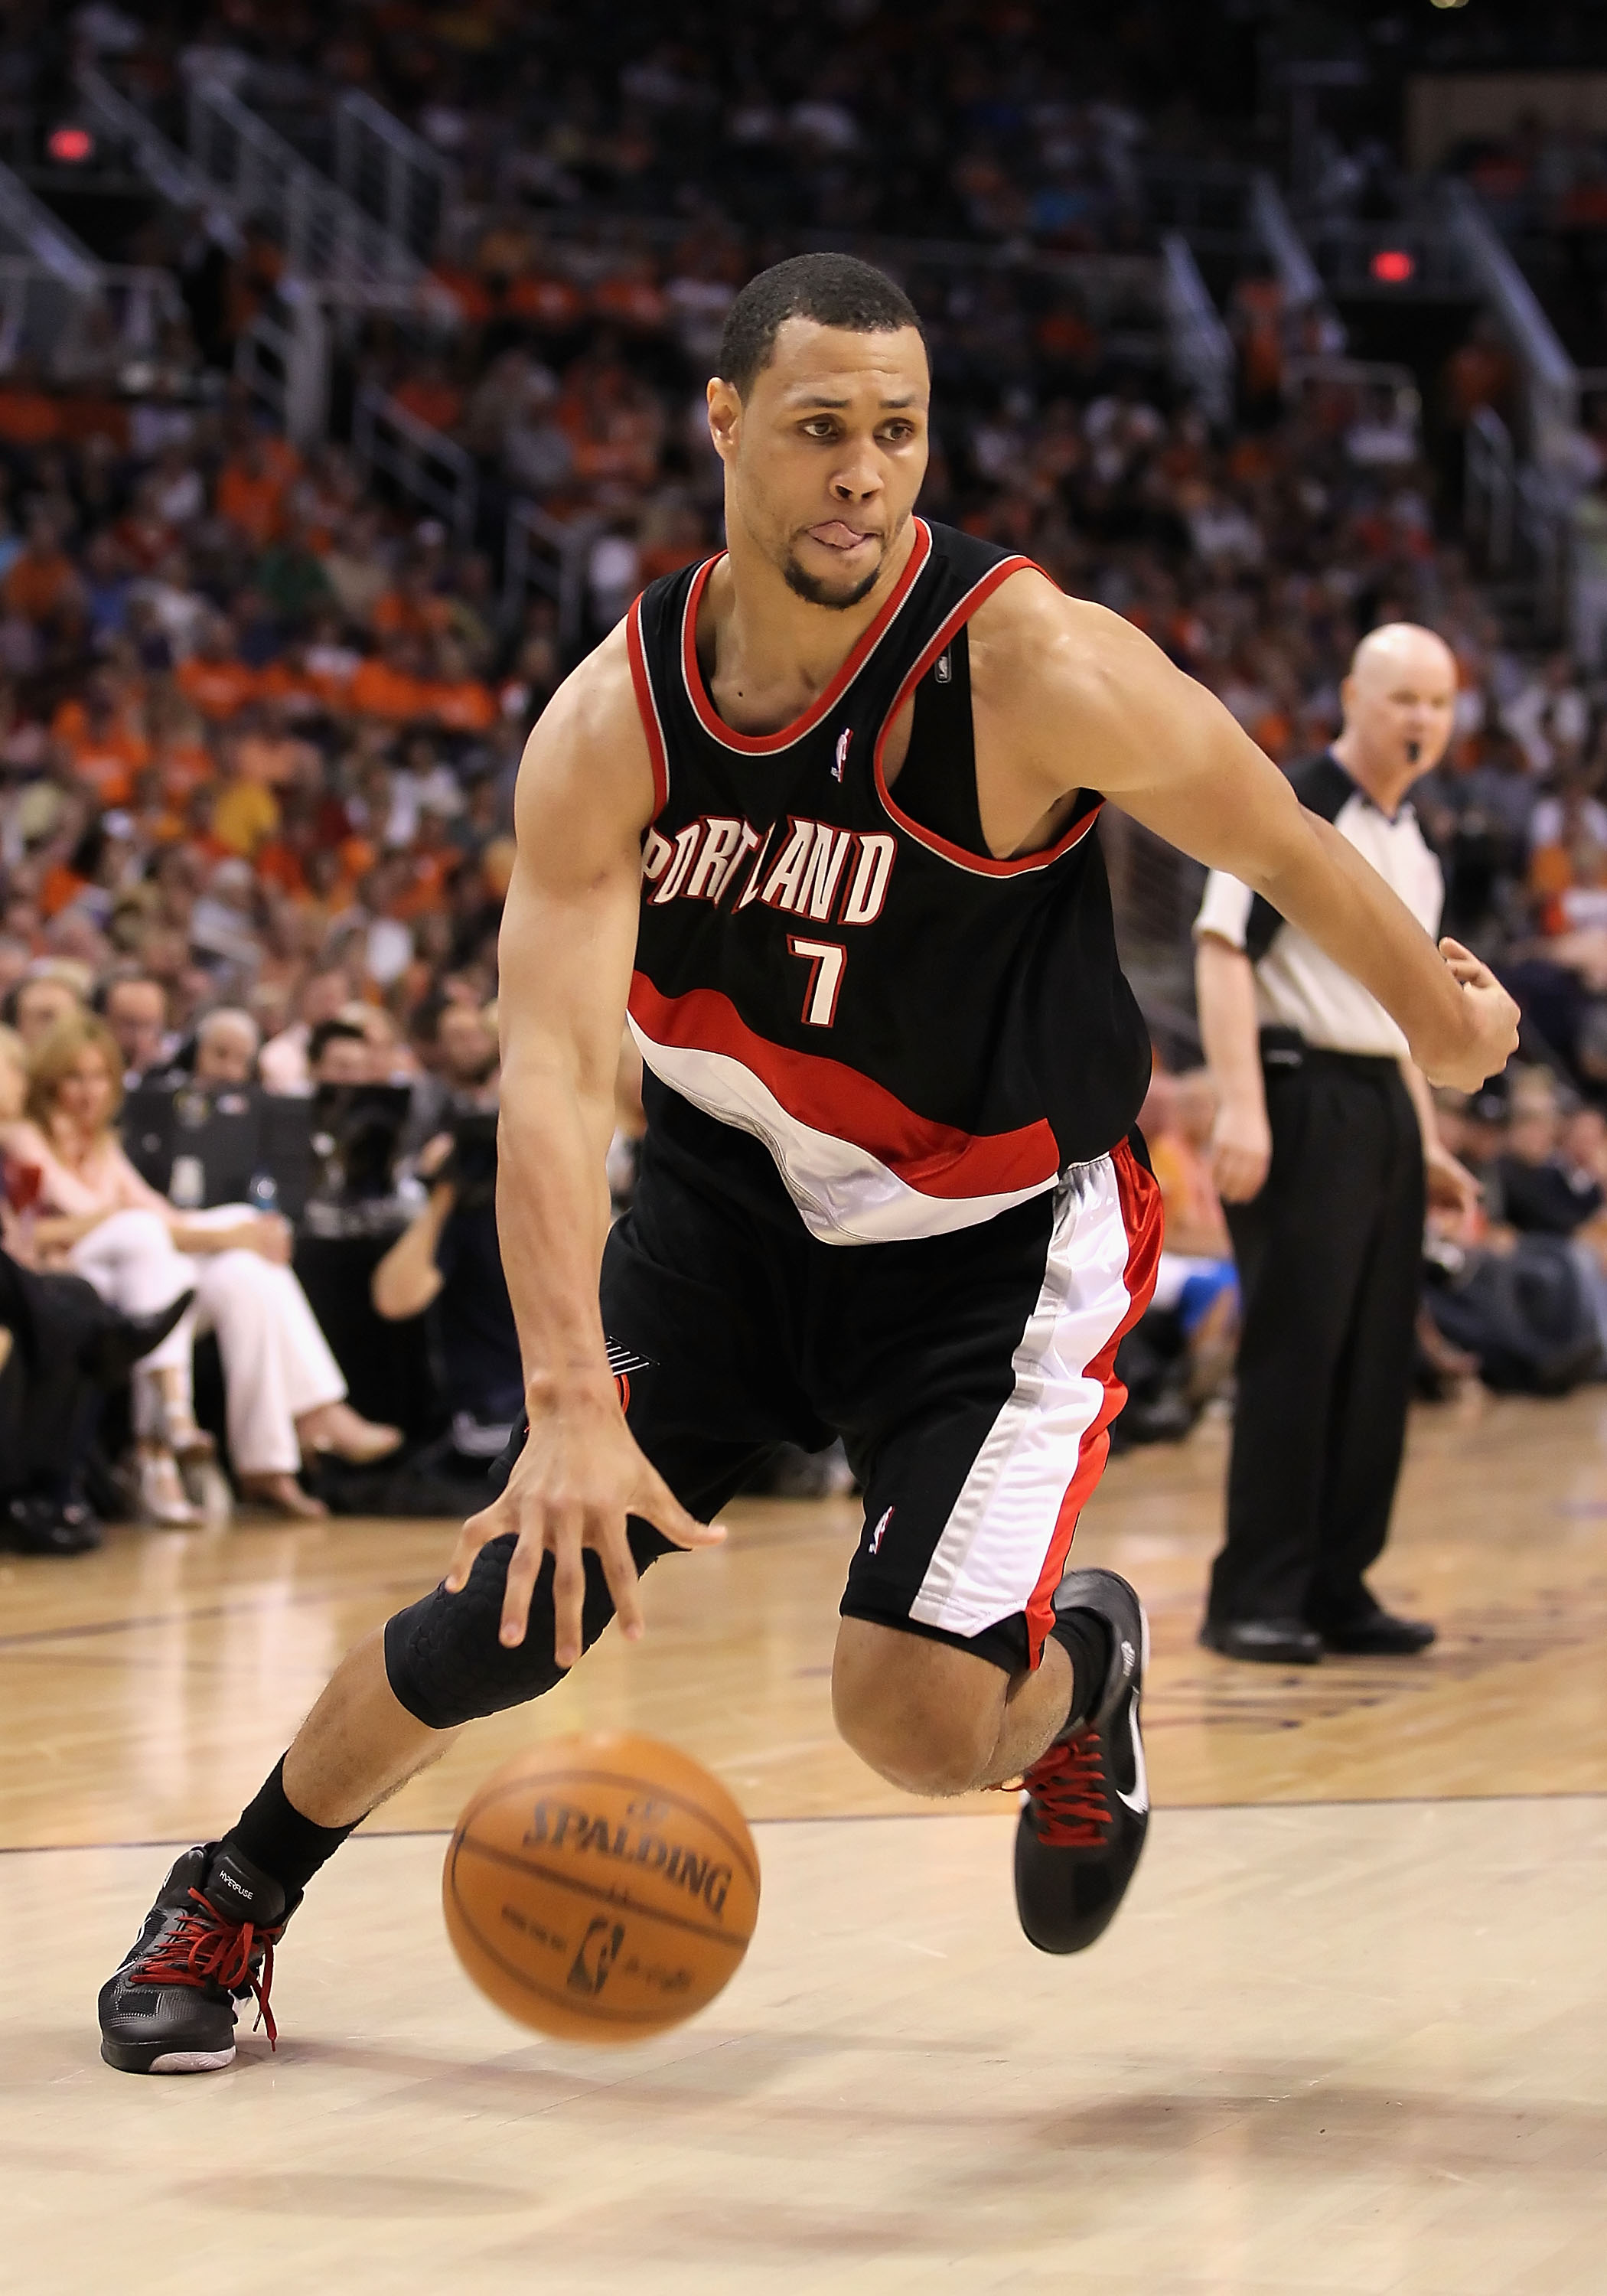 PHOENIX - APRIL 26:  Brandon Roy #7 of the Portland Trail Blazers handles the ball during Game Five of the Western Conference Quarterfinals of the 2010 NBA Playoffs against the Phoenix Suns at US Airways Center on April 26, 2010 in Phoenix, Arizona. NOTE